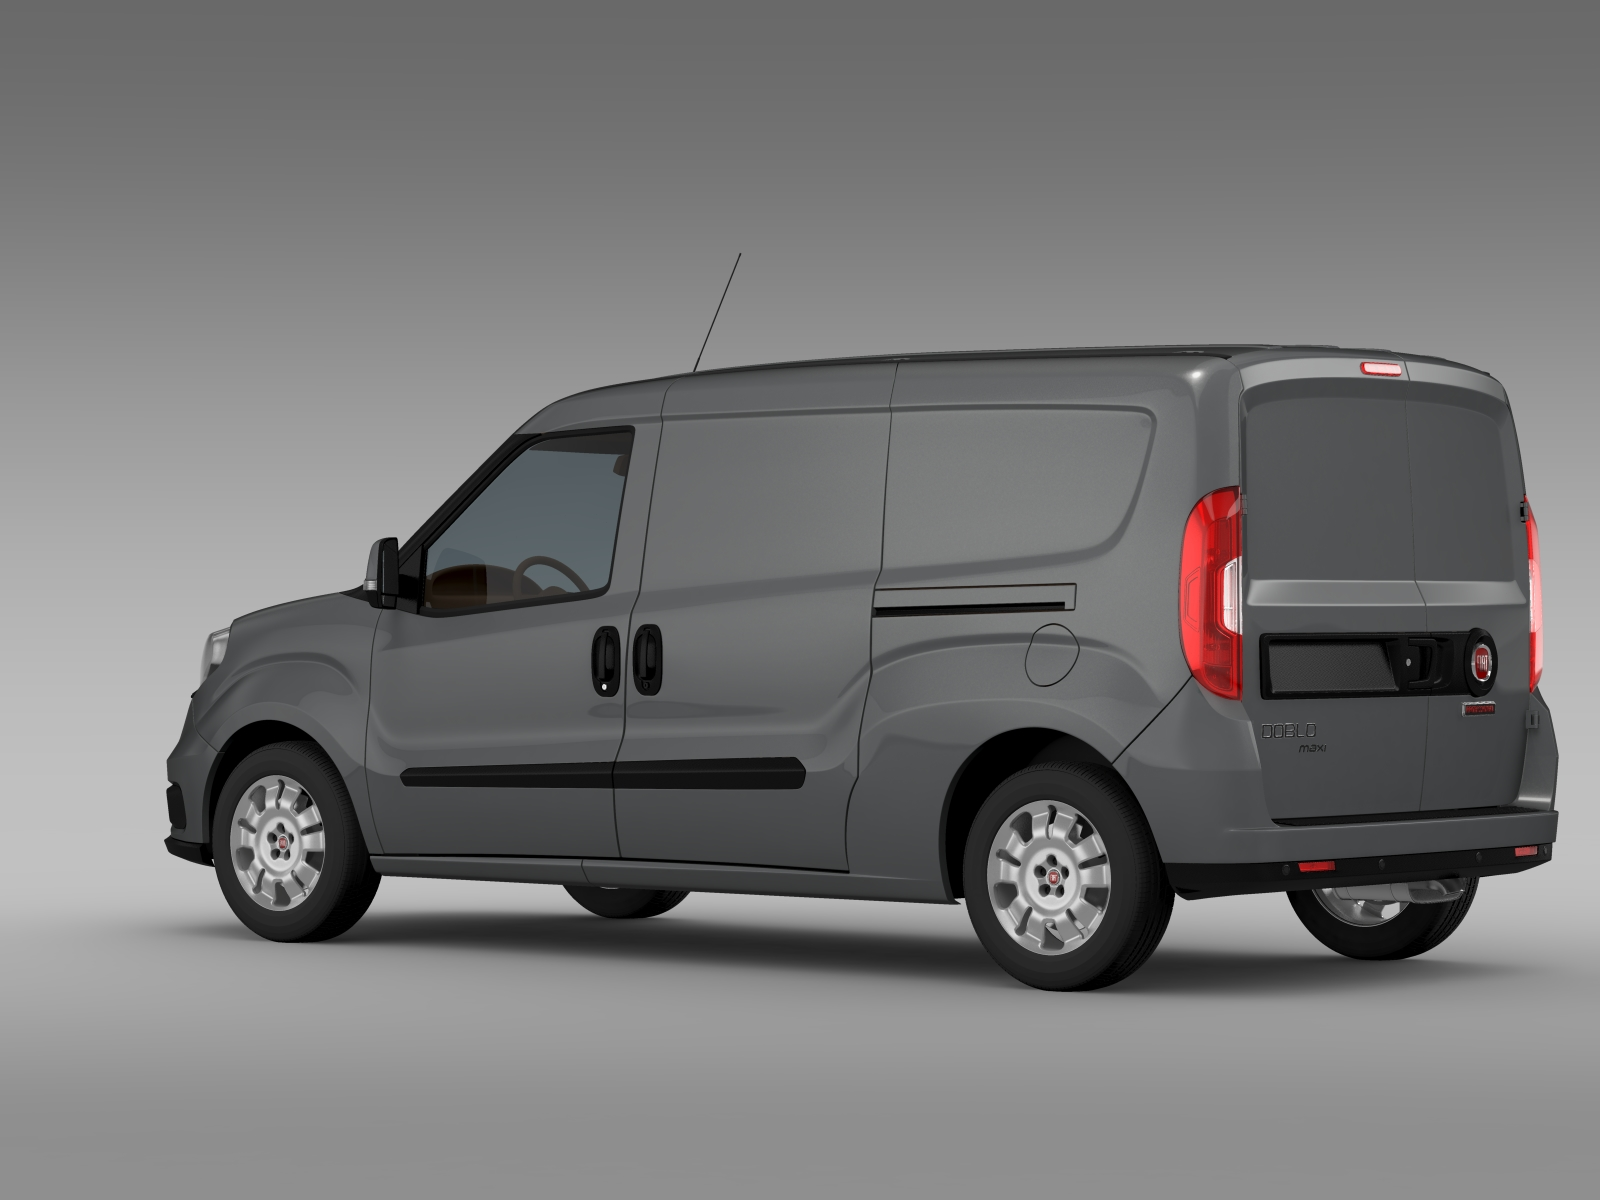 fiat doblo cargo maxi 263 2015 3d model. Black Bedroom Furniture Sets. Home Design Ideas